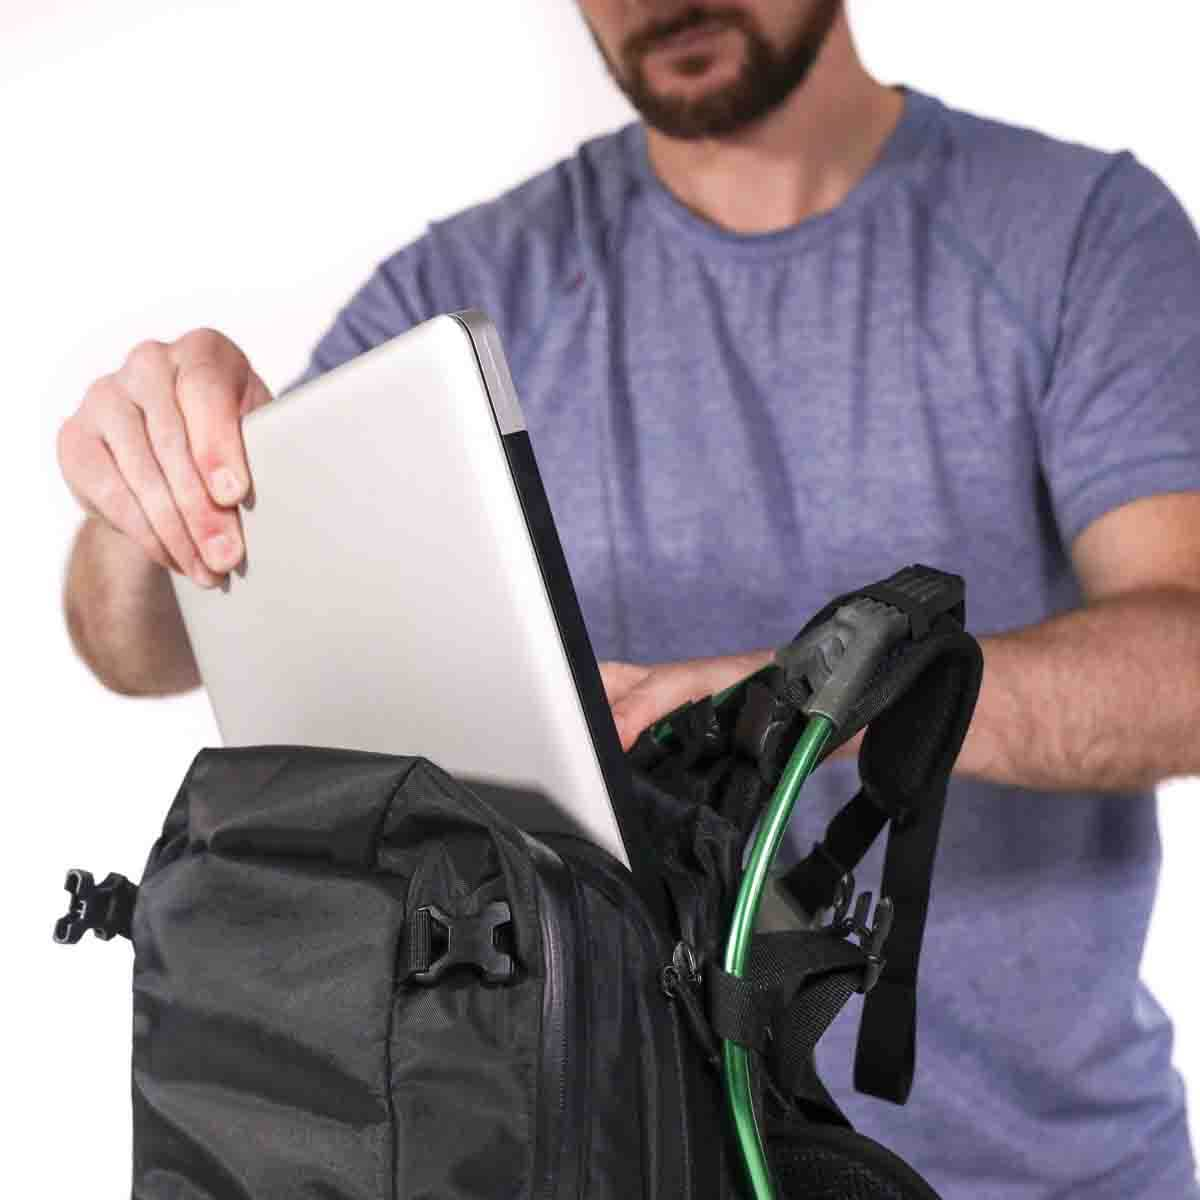 Motionlab active commute bag product design innovation functionality